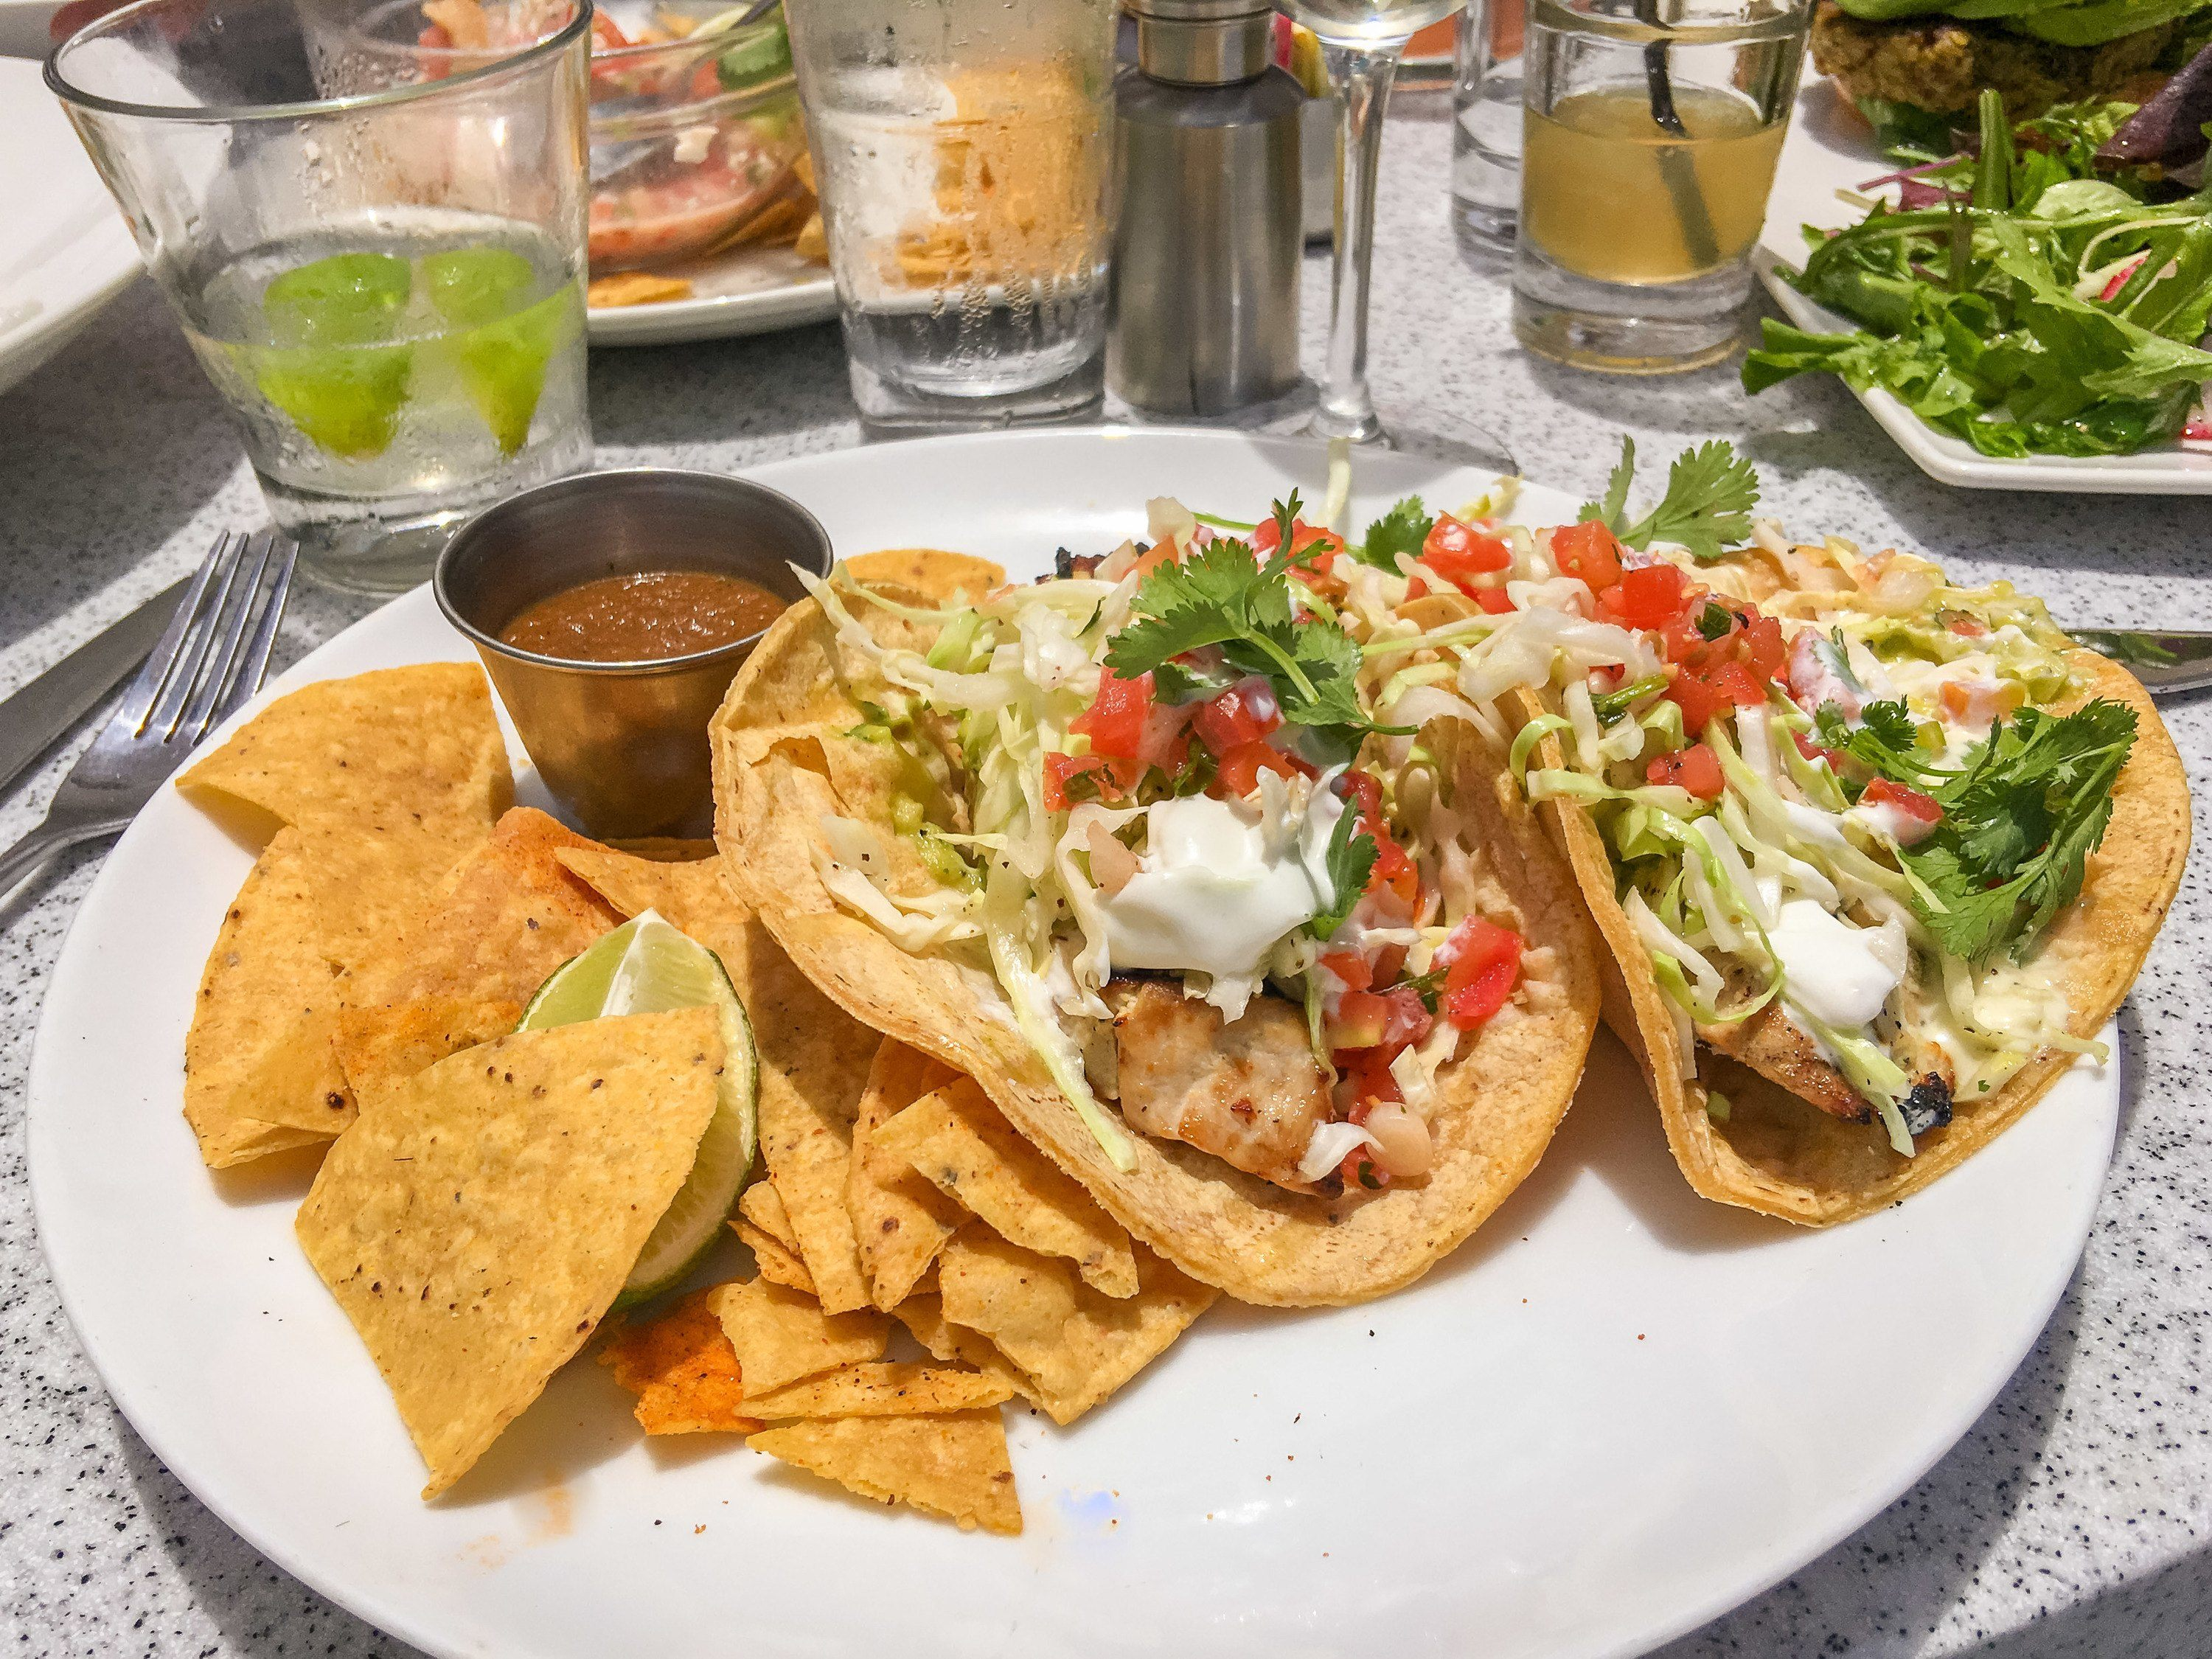 George's Ocean Terrace has some of the best fish tacos in La Jolla, if not all of San Diego.